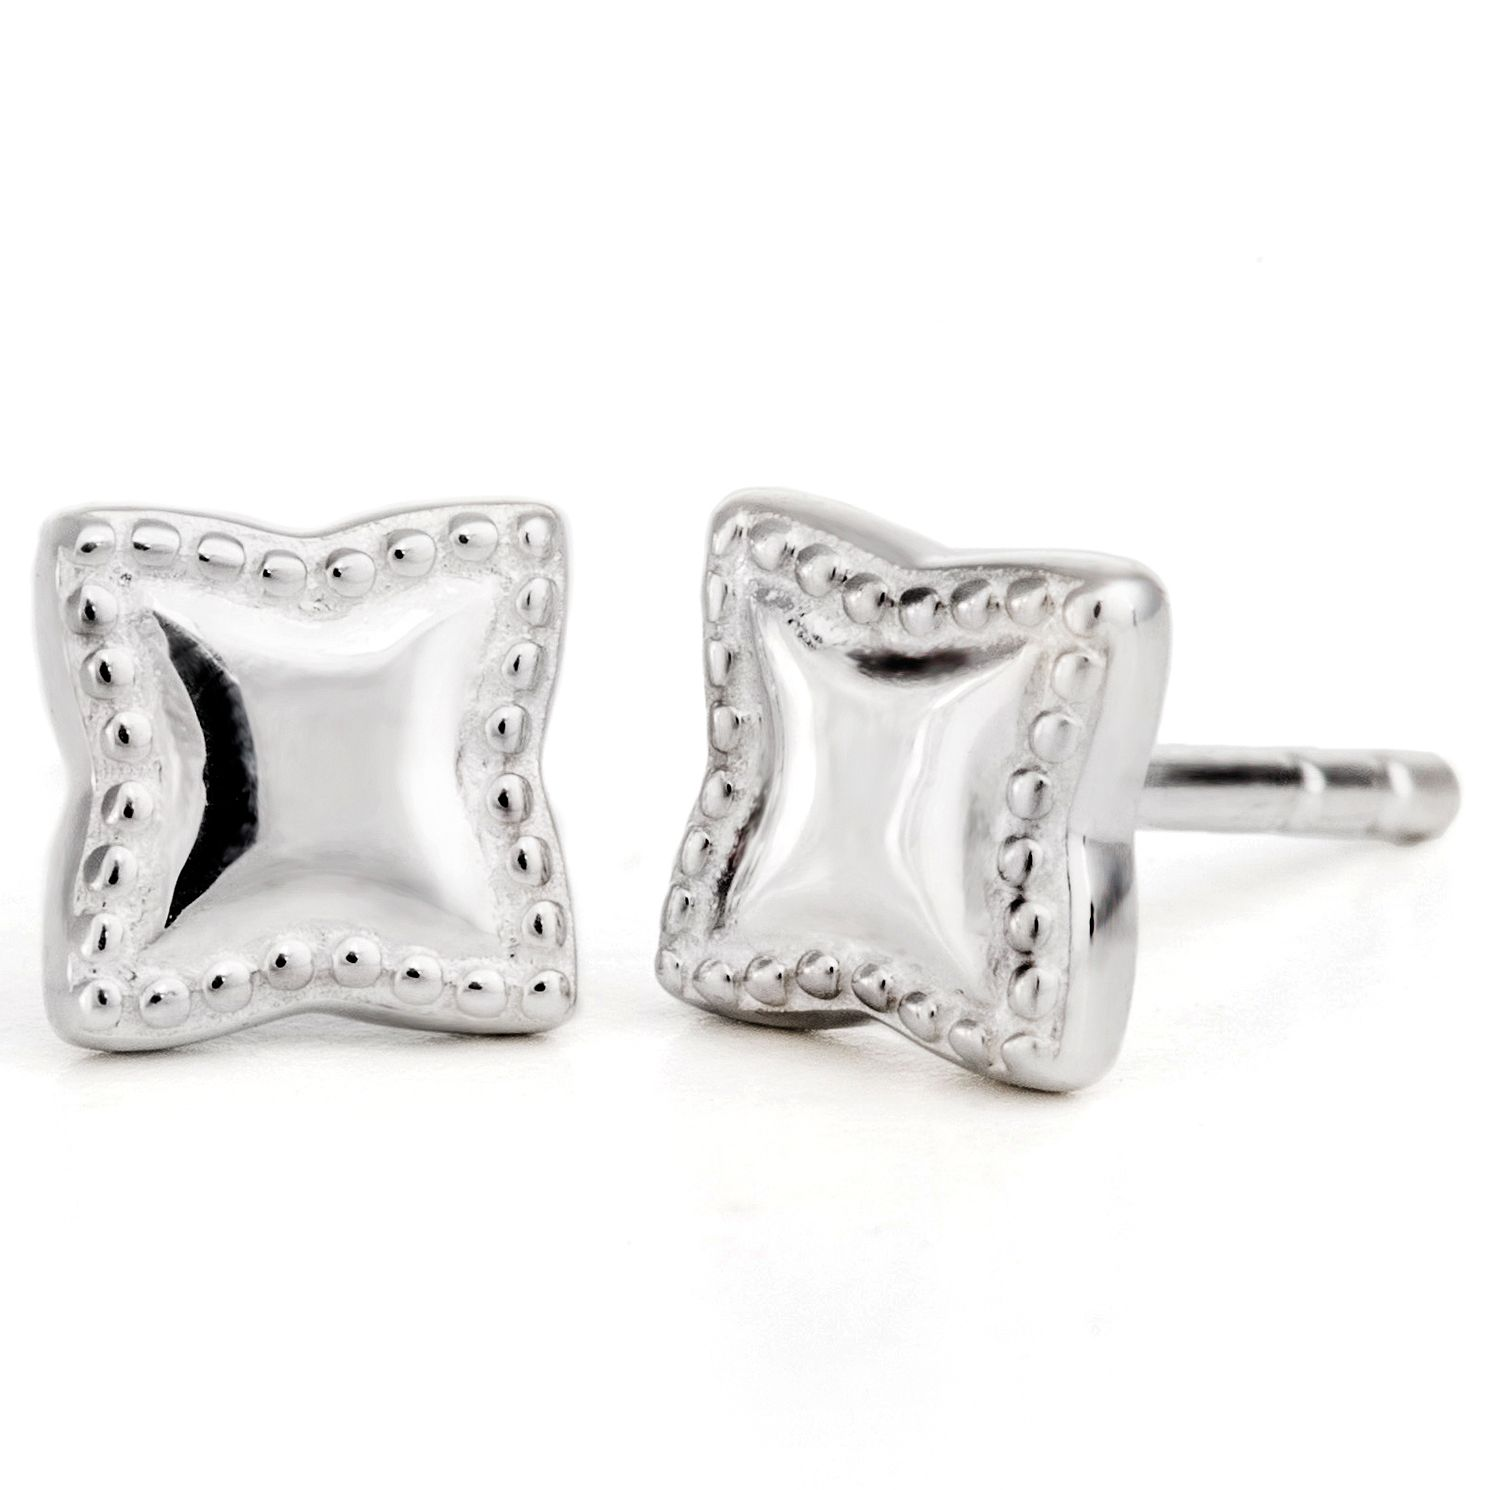 Chamilia Sterling Silver Bright Petite Star Stud Earrings - Product number 5127424